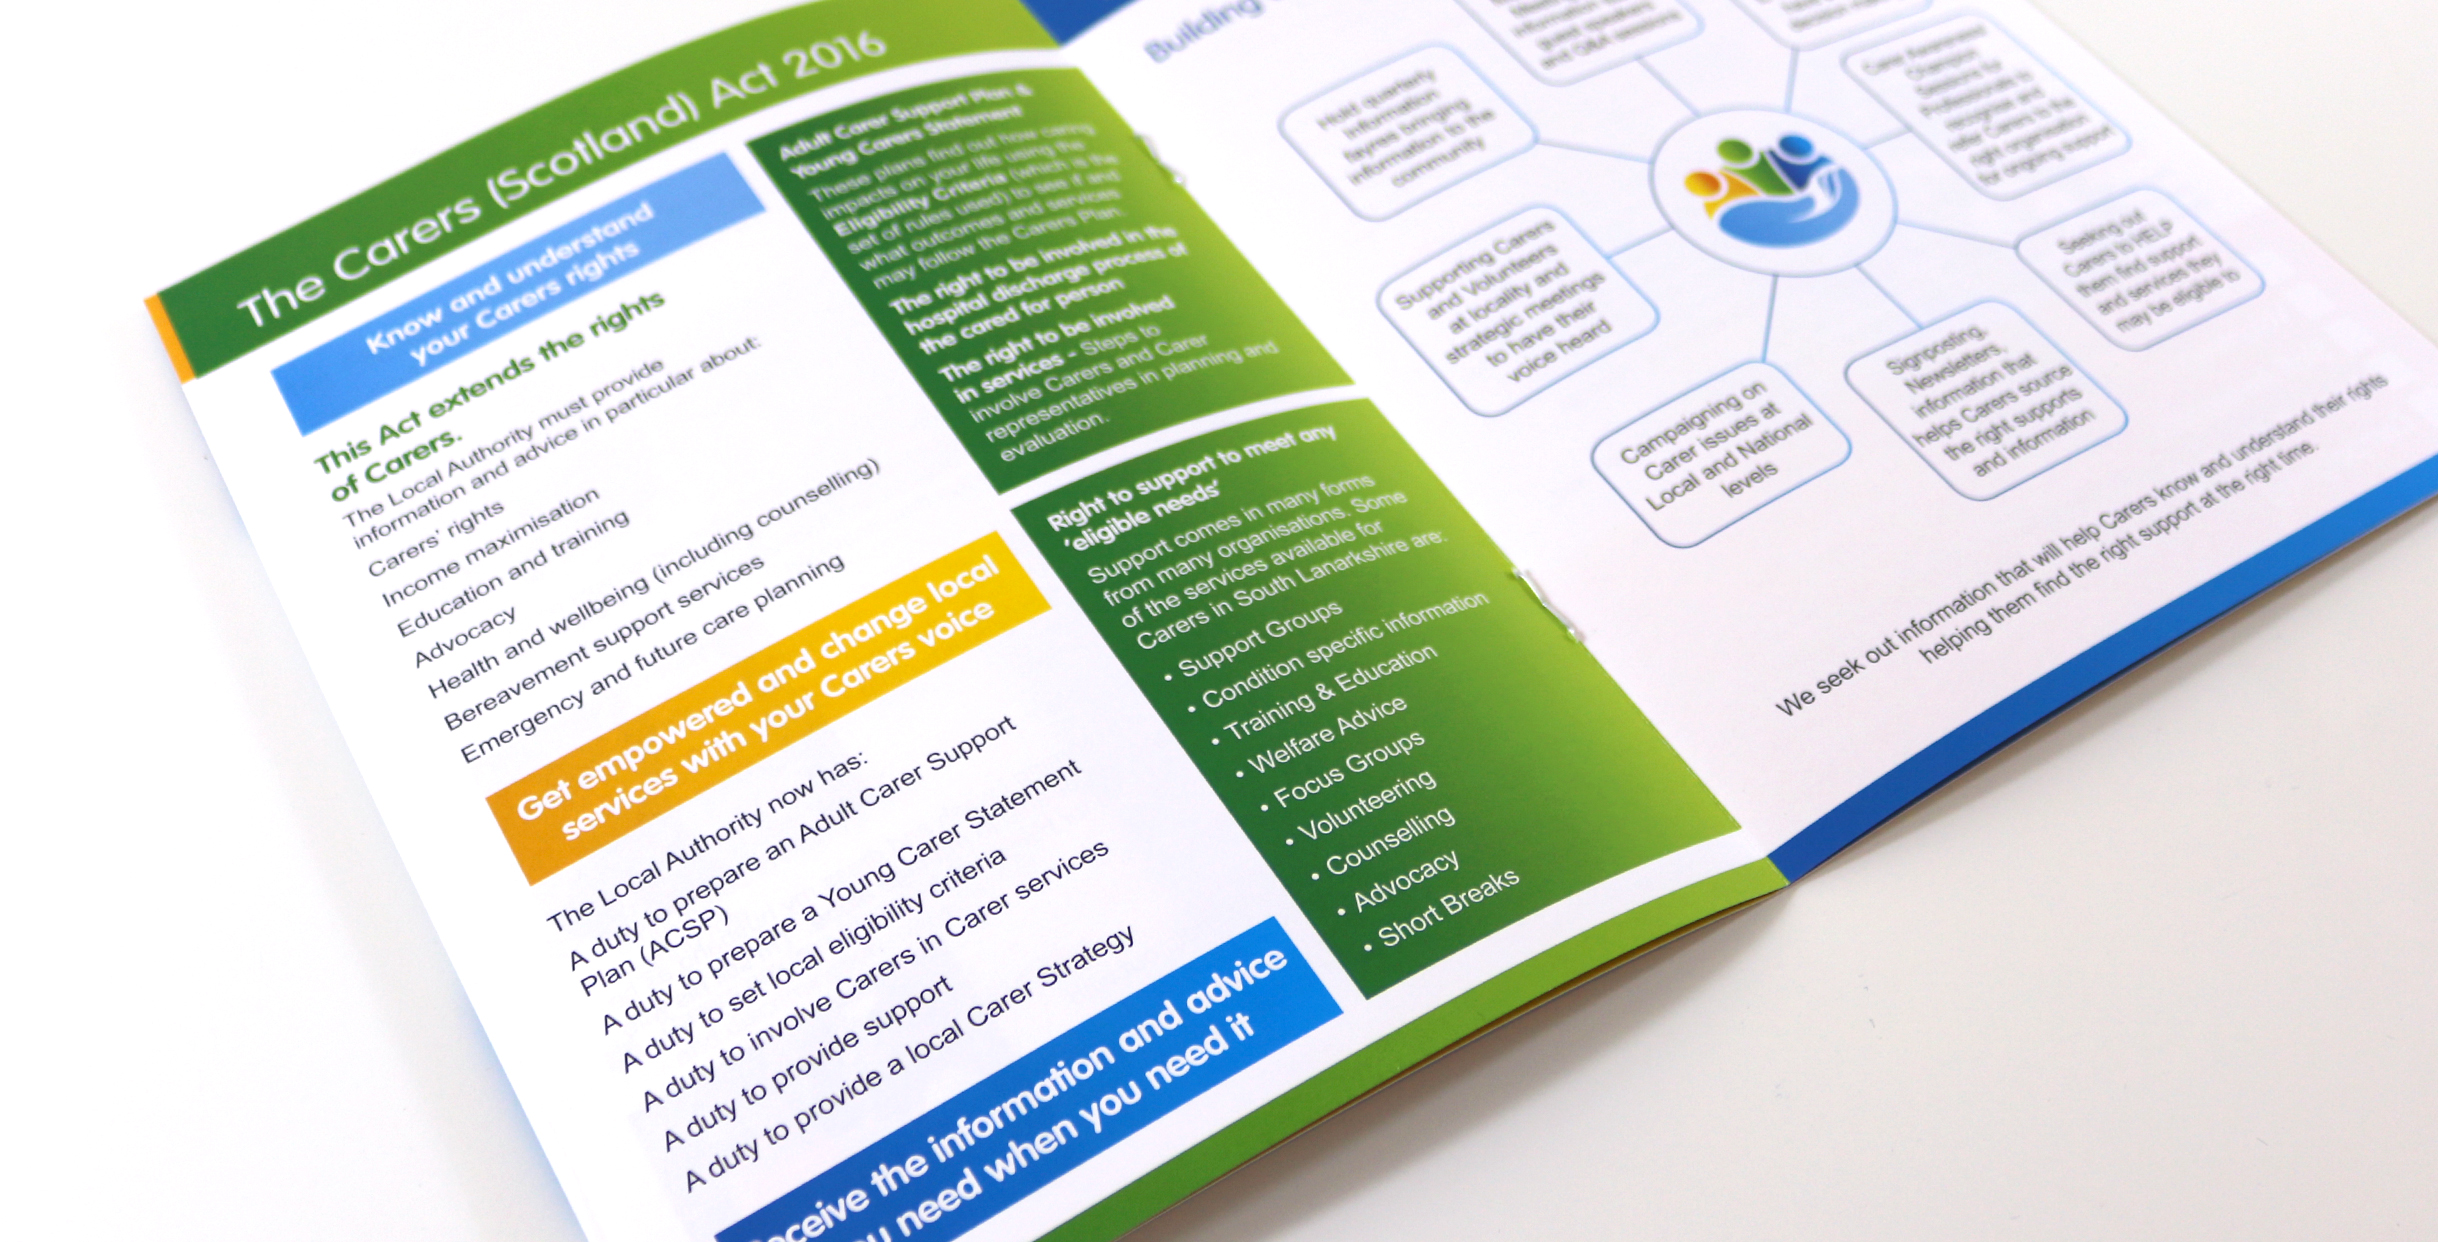 Inside Carers Book for South Lanarkshire Carers Network. Information marketing material